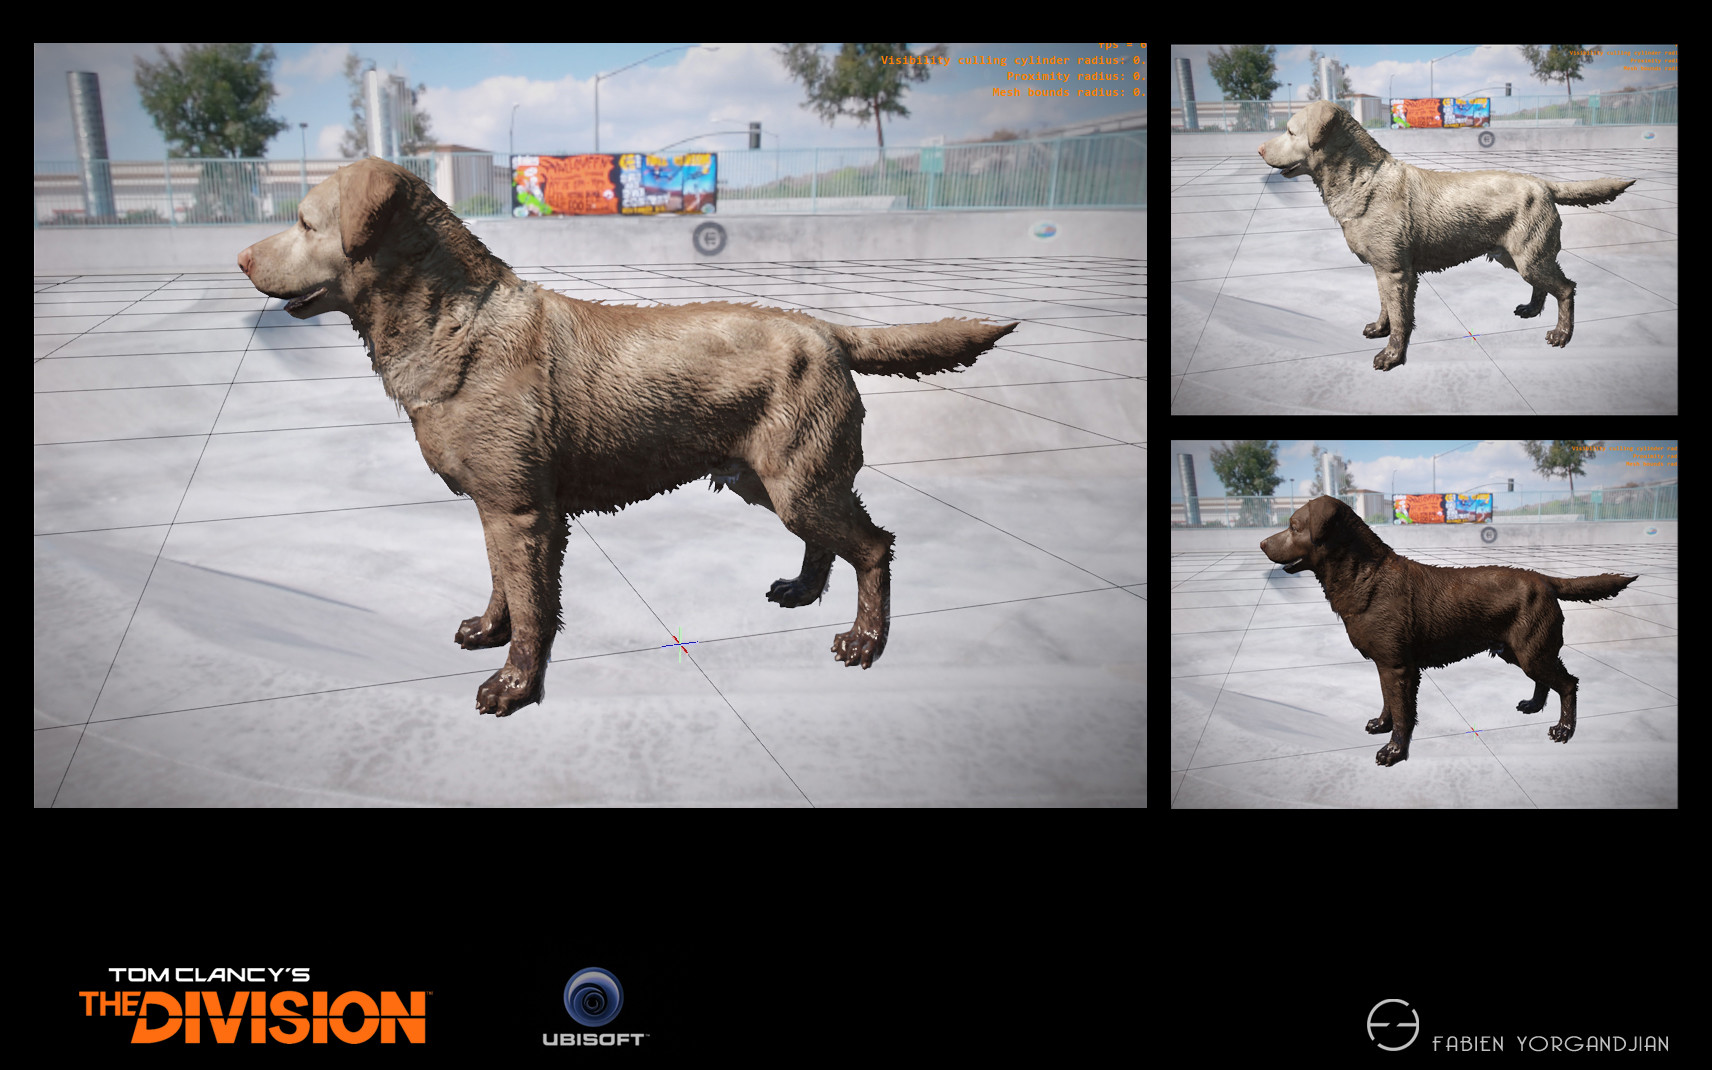 Fabien yorgandjian the division dog05 ingame